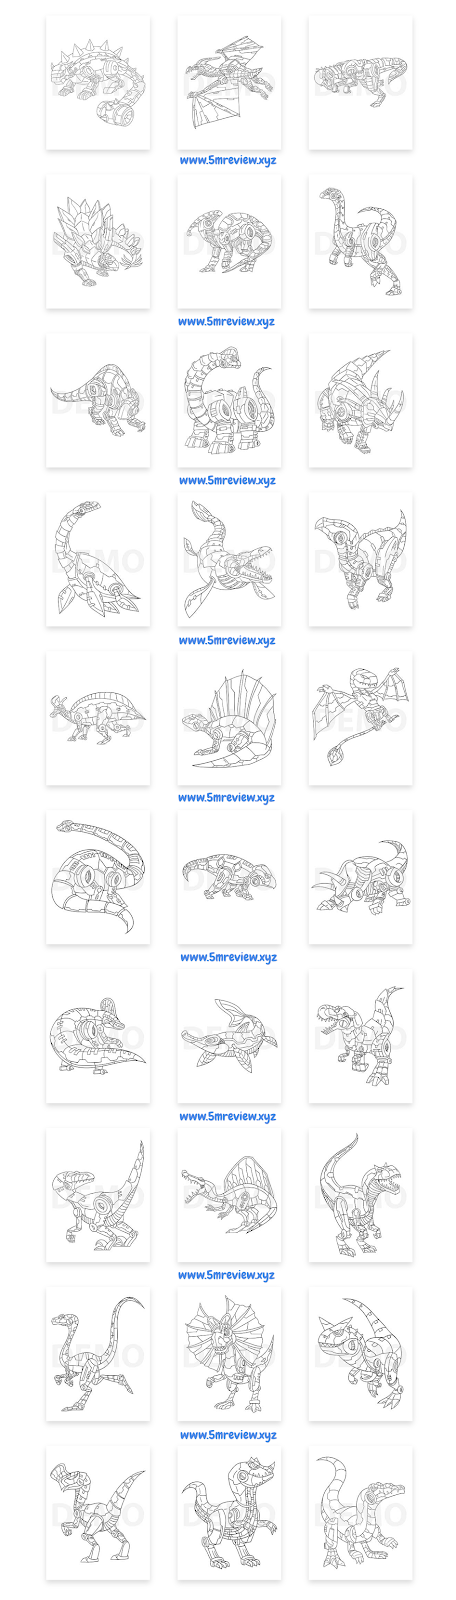 Robo-Dino-Coloring-Pack-Sample